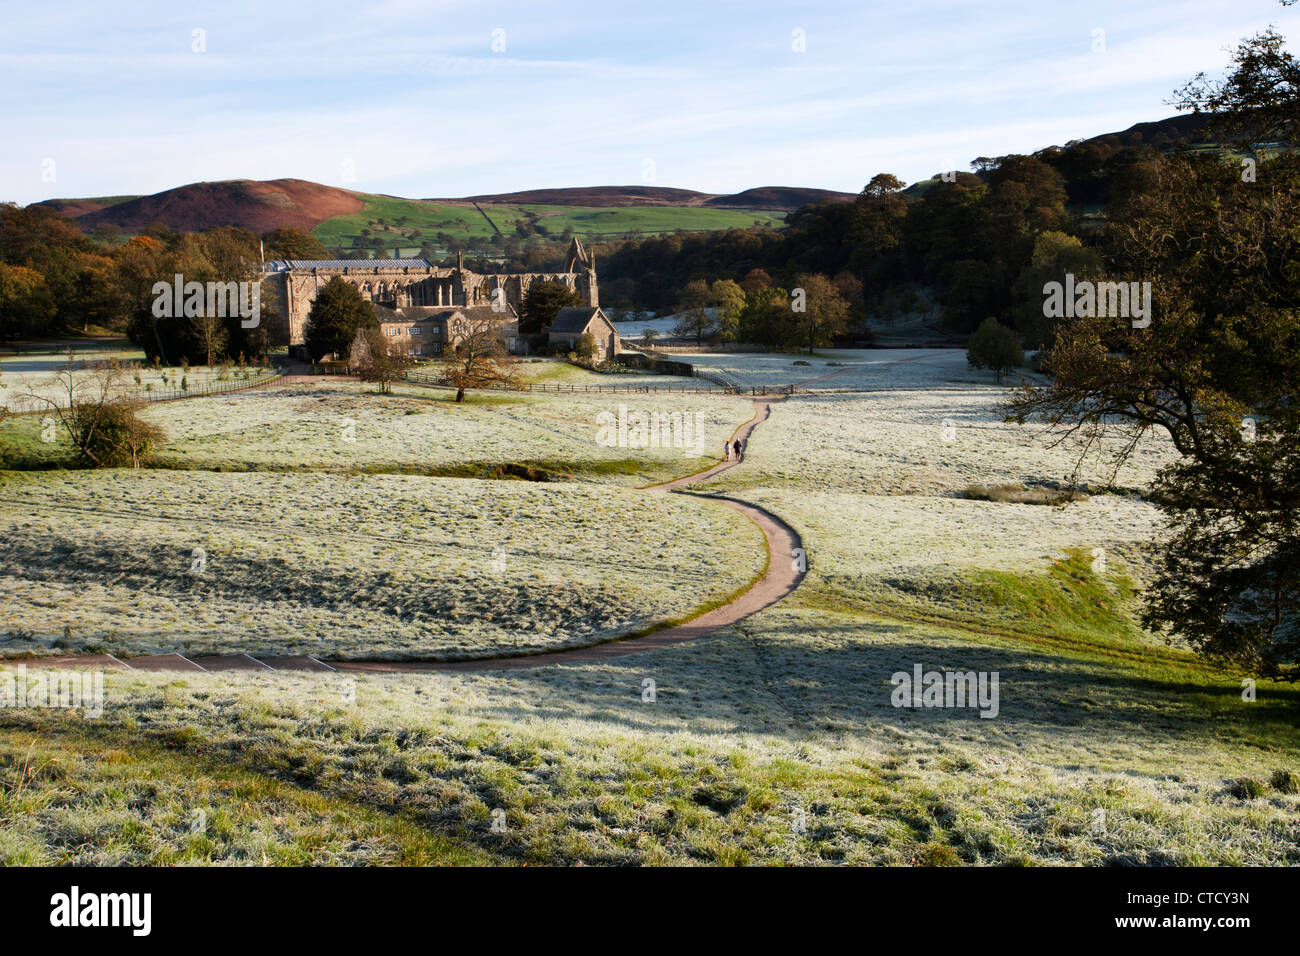 Bolton Abbey, Wharfedale, North Yorkshire Dales National Park Stock Photo